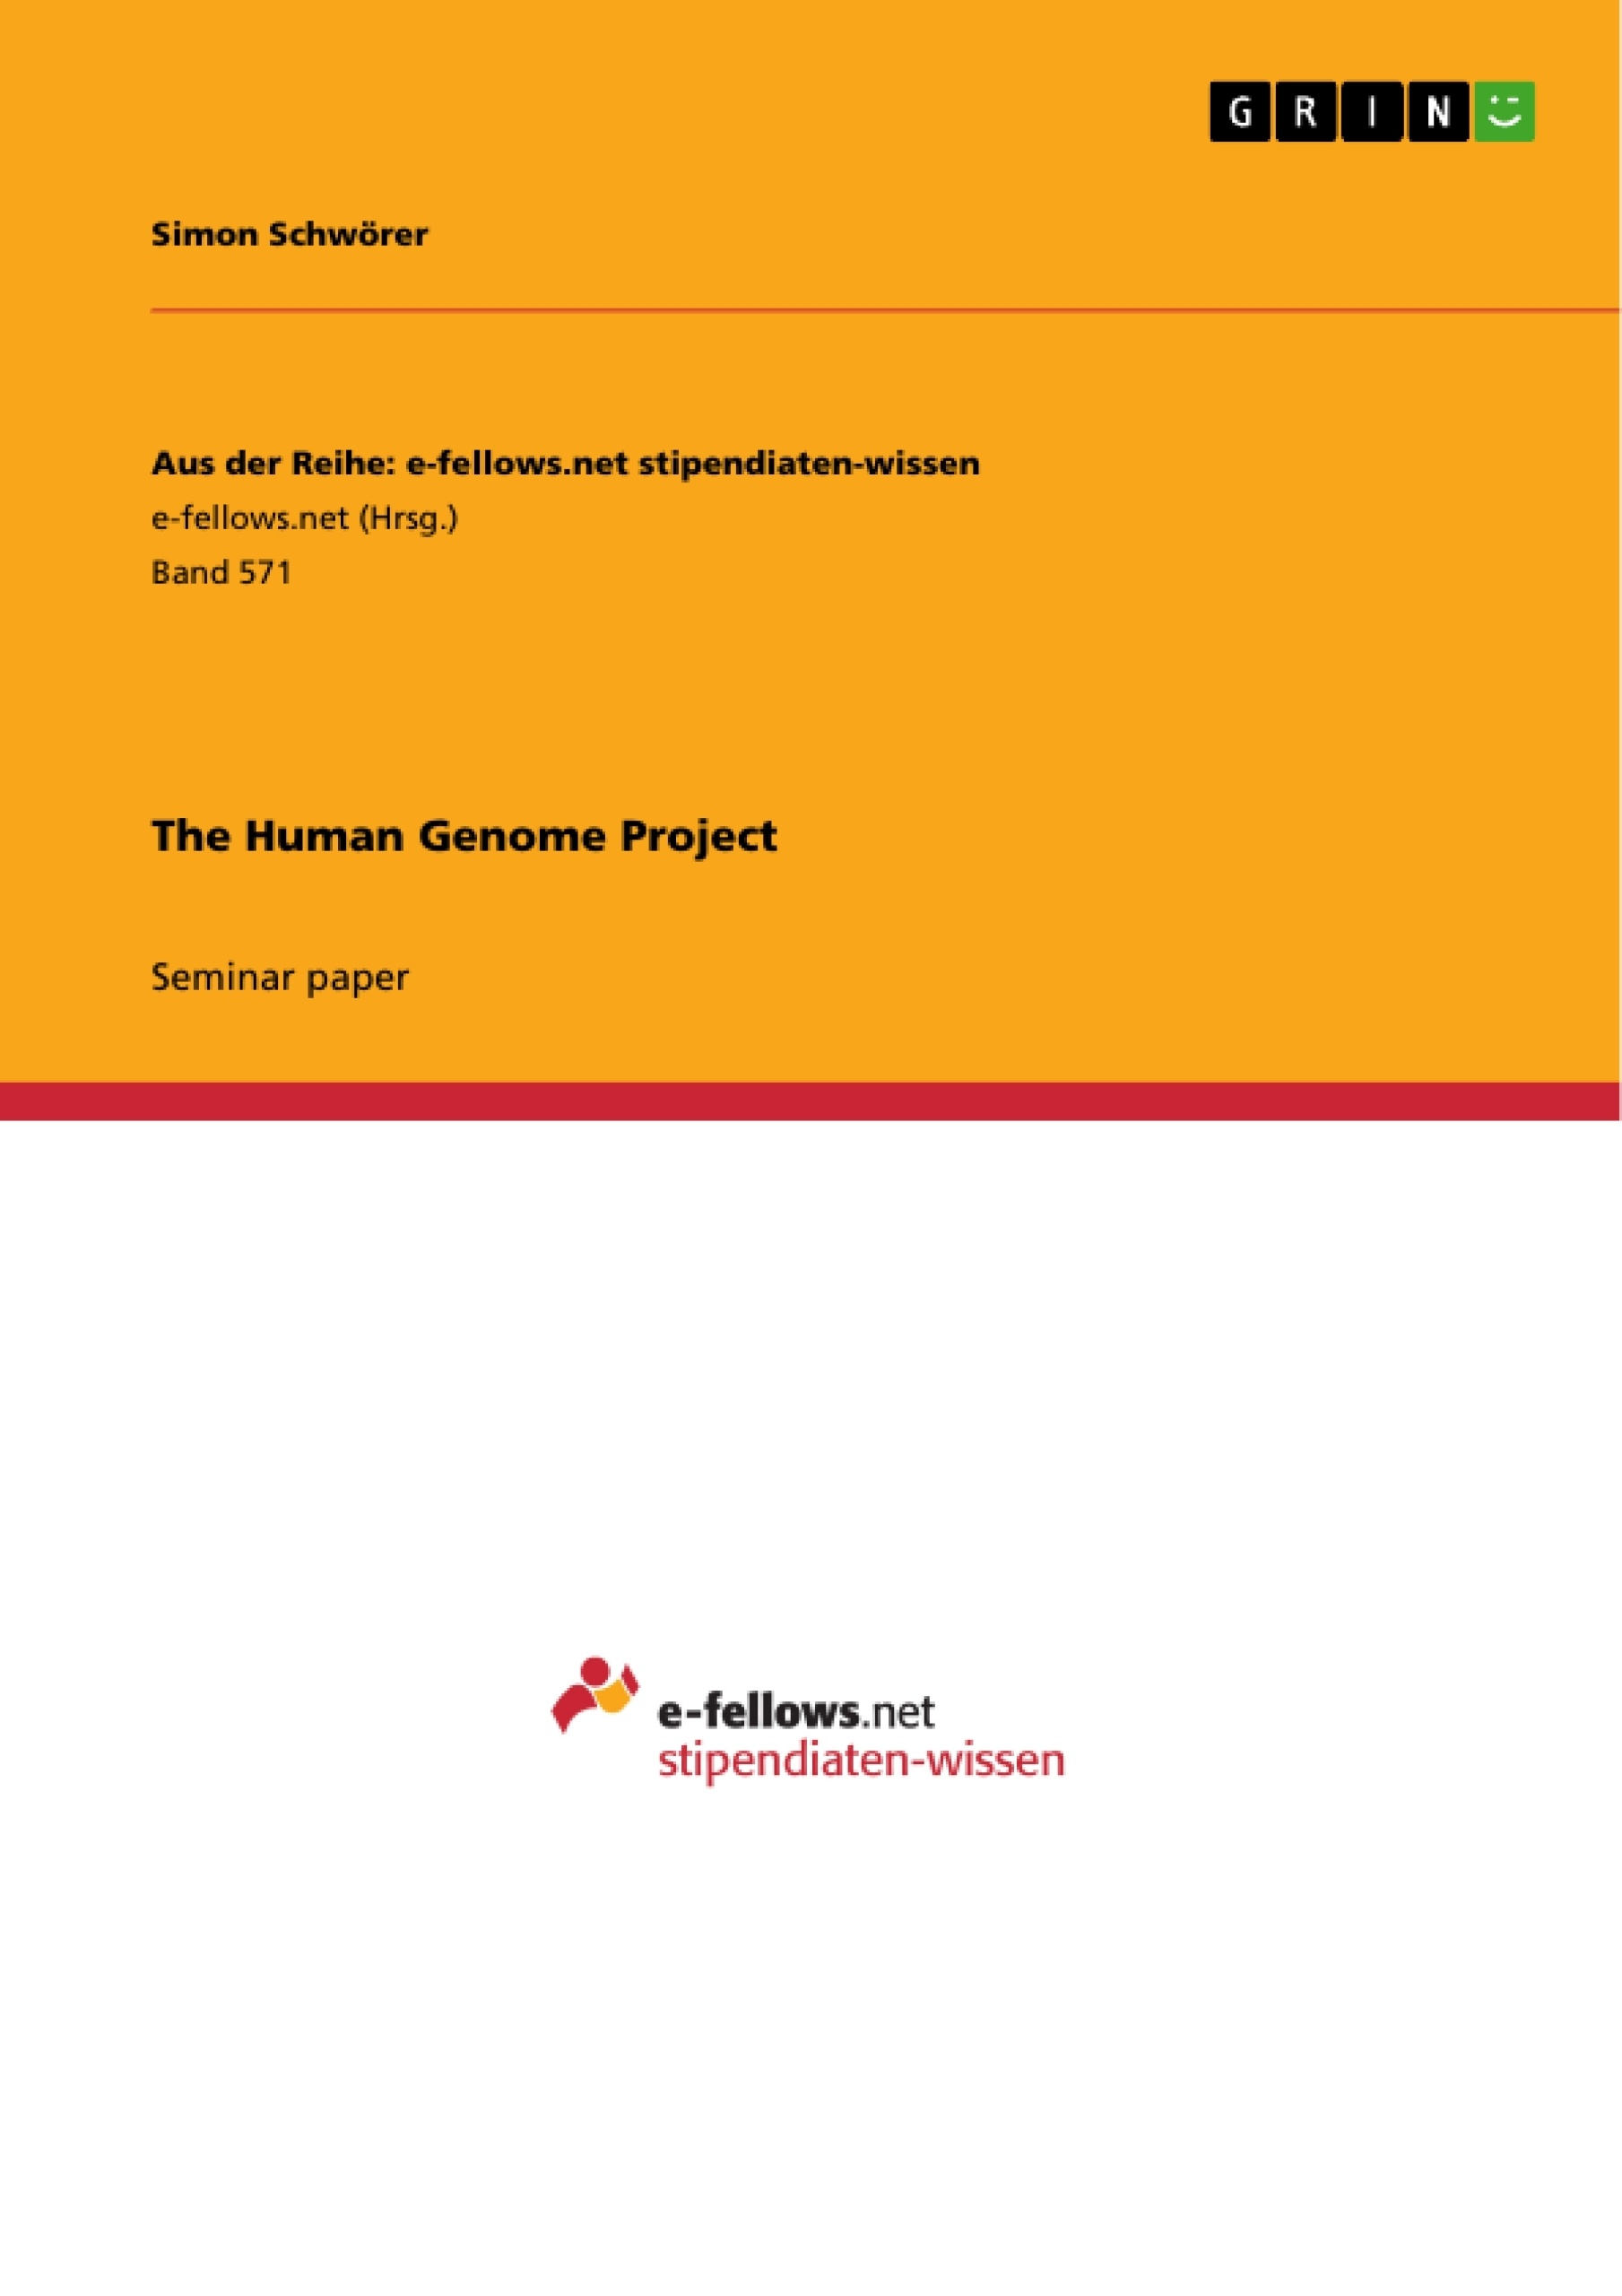 Title: The Human Genome Project